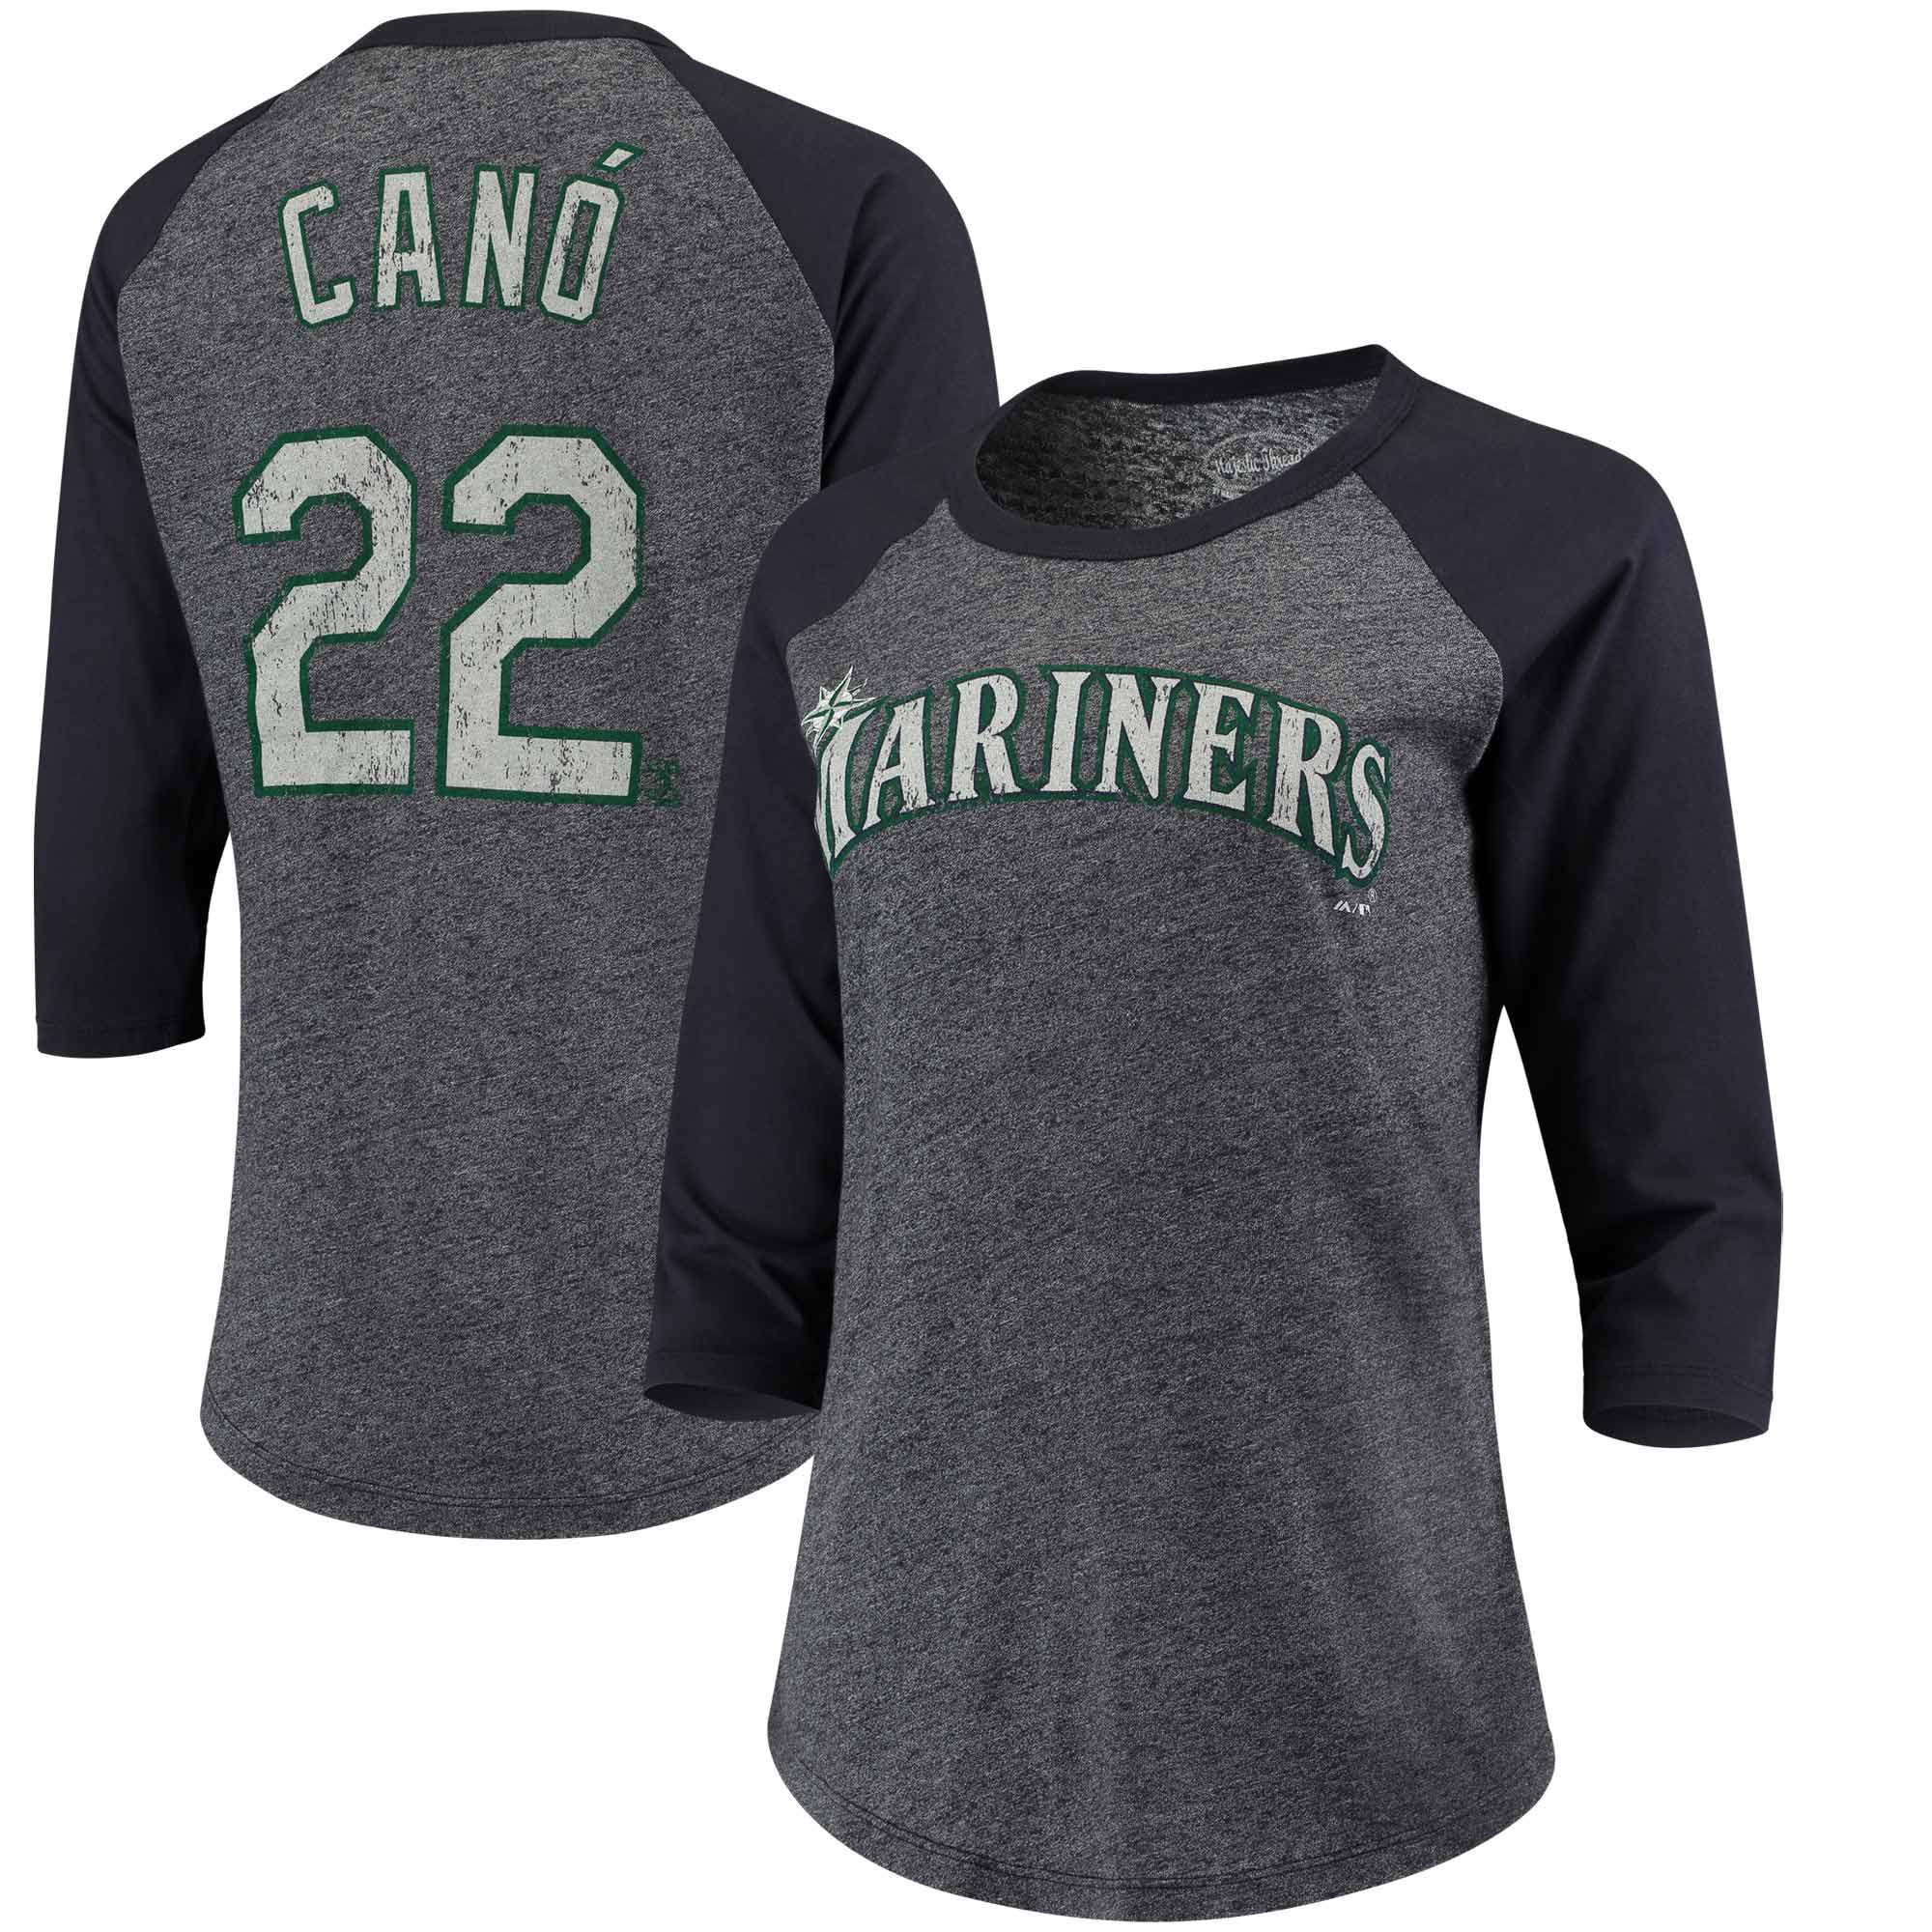 Robinson Cano Seattle Mariners Majestic Threads Women's 3/4-Sleeve Raglan Name & Number T-Shirt - Navy